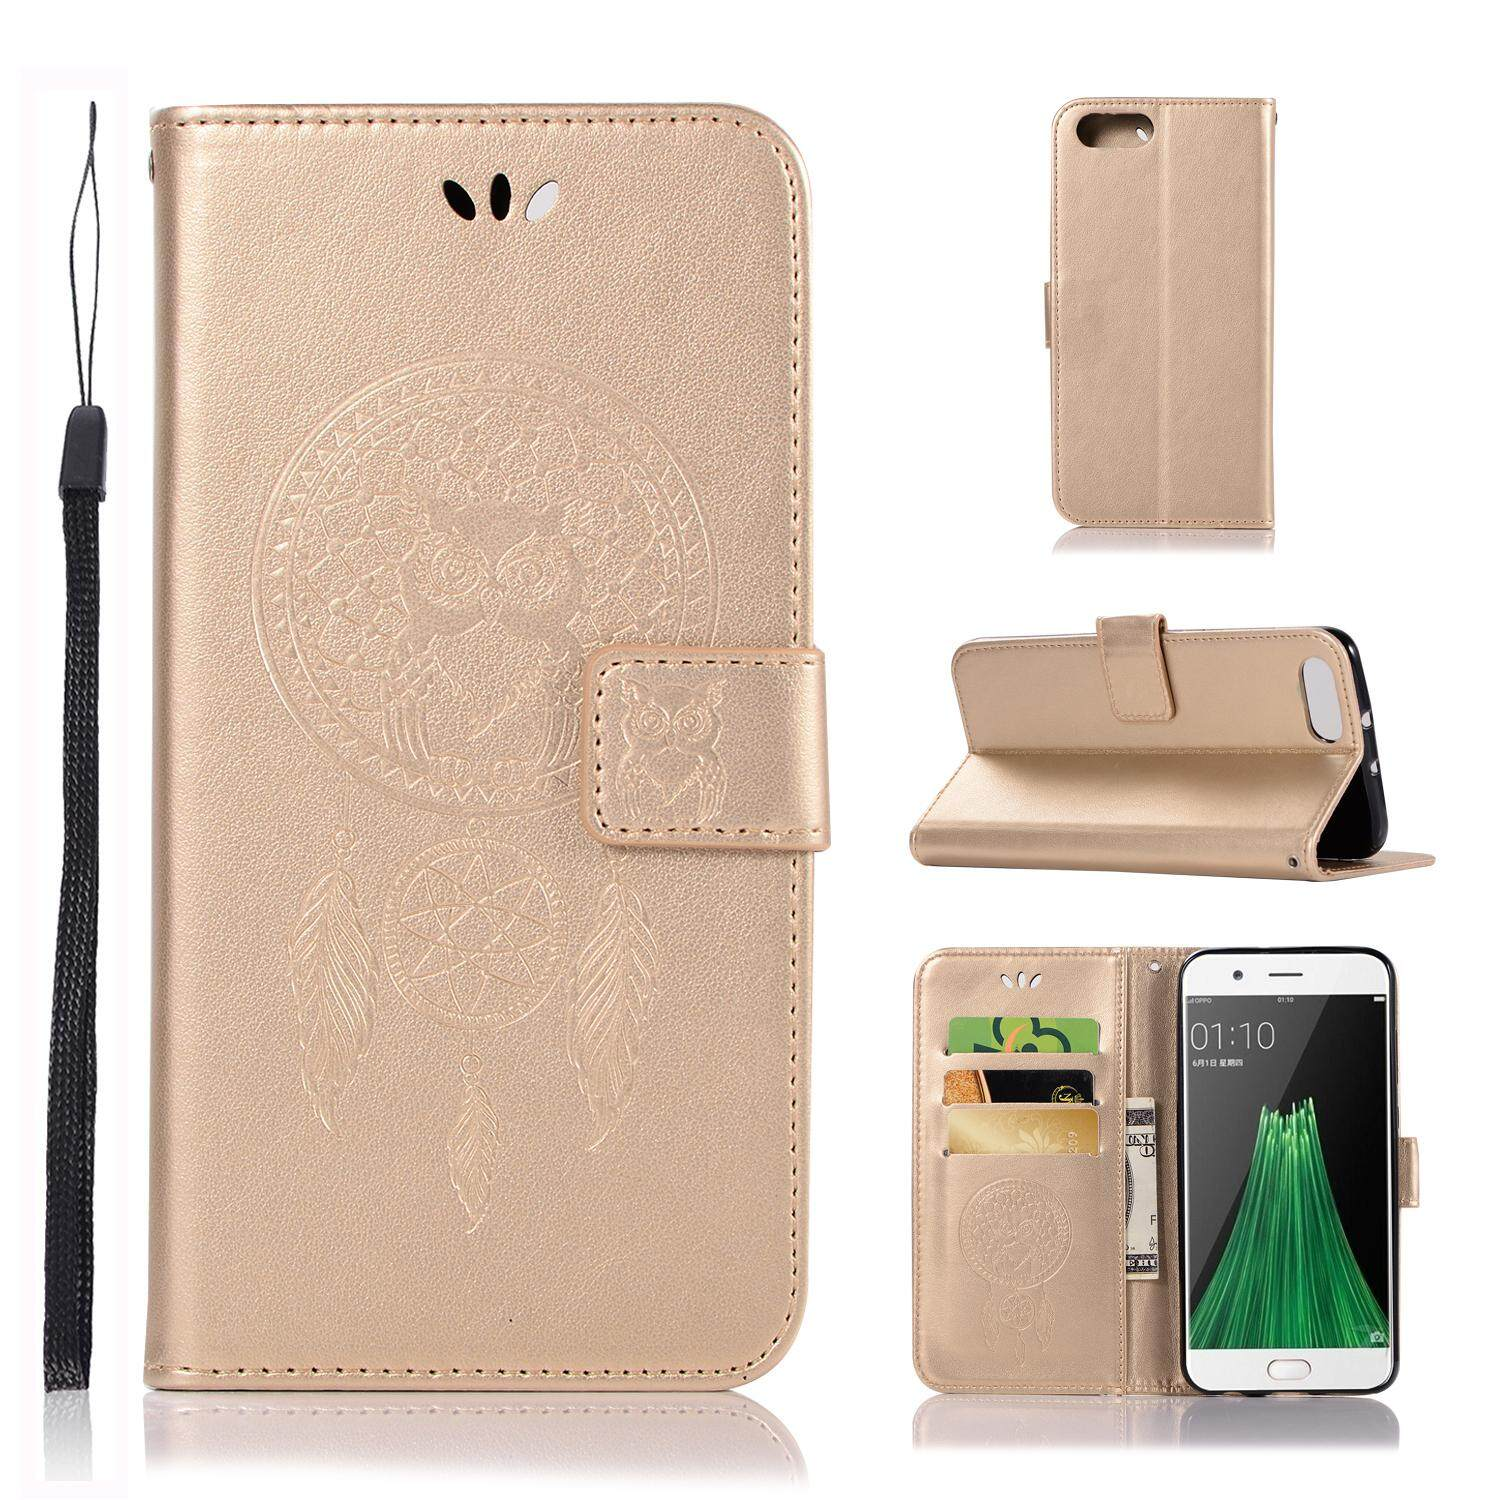 Luxury For Oppo R11 Casing , 3d Owl Embossing Leather Folio Flip Case Cover By Life Goes On.